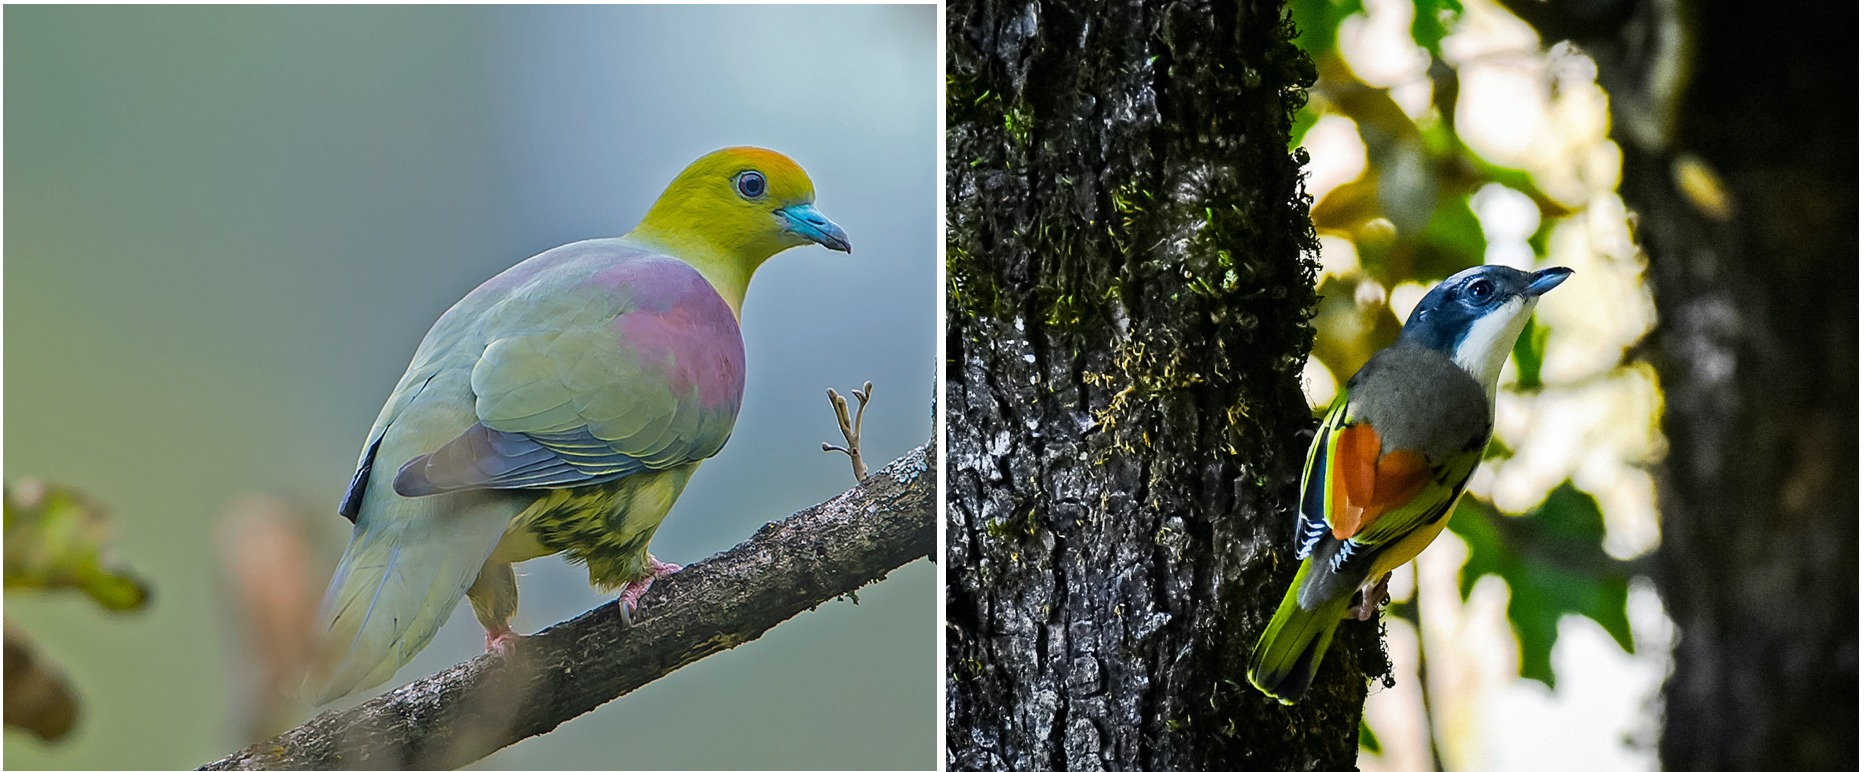 (Left) Wedge-tailed green pigeon is a wide-ranging species that is responsible for seed dispersal of numerous hardwood species in oak forests such as Chopta, Uttarakhand. (Right) The Himalayan shrike babbler is an insectivorous species that prefers oak stands over pine. and is resident through the winter Photo: Koshy Koshy from Faridabad, Haryana, India CC BY 2.0 (left), Jagdish Negi, Almora (right)